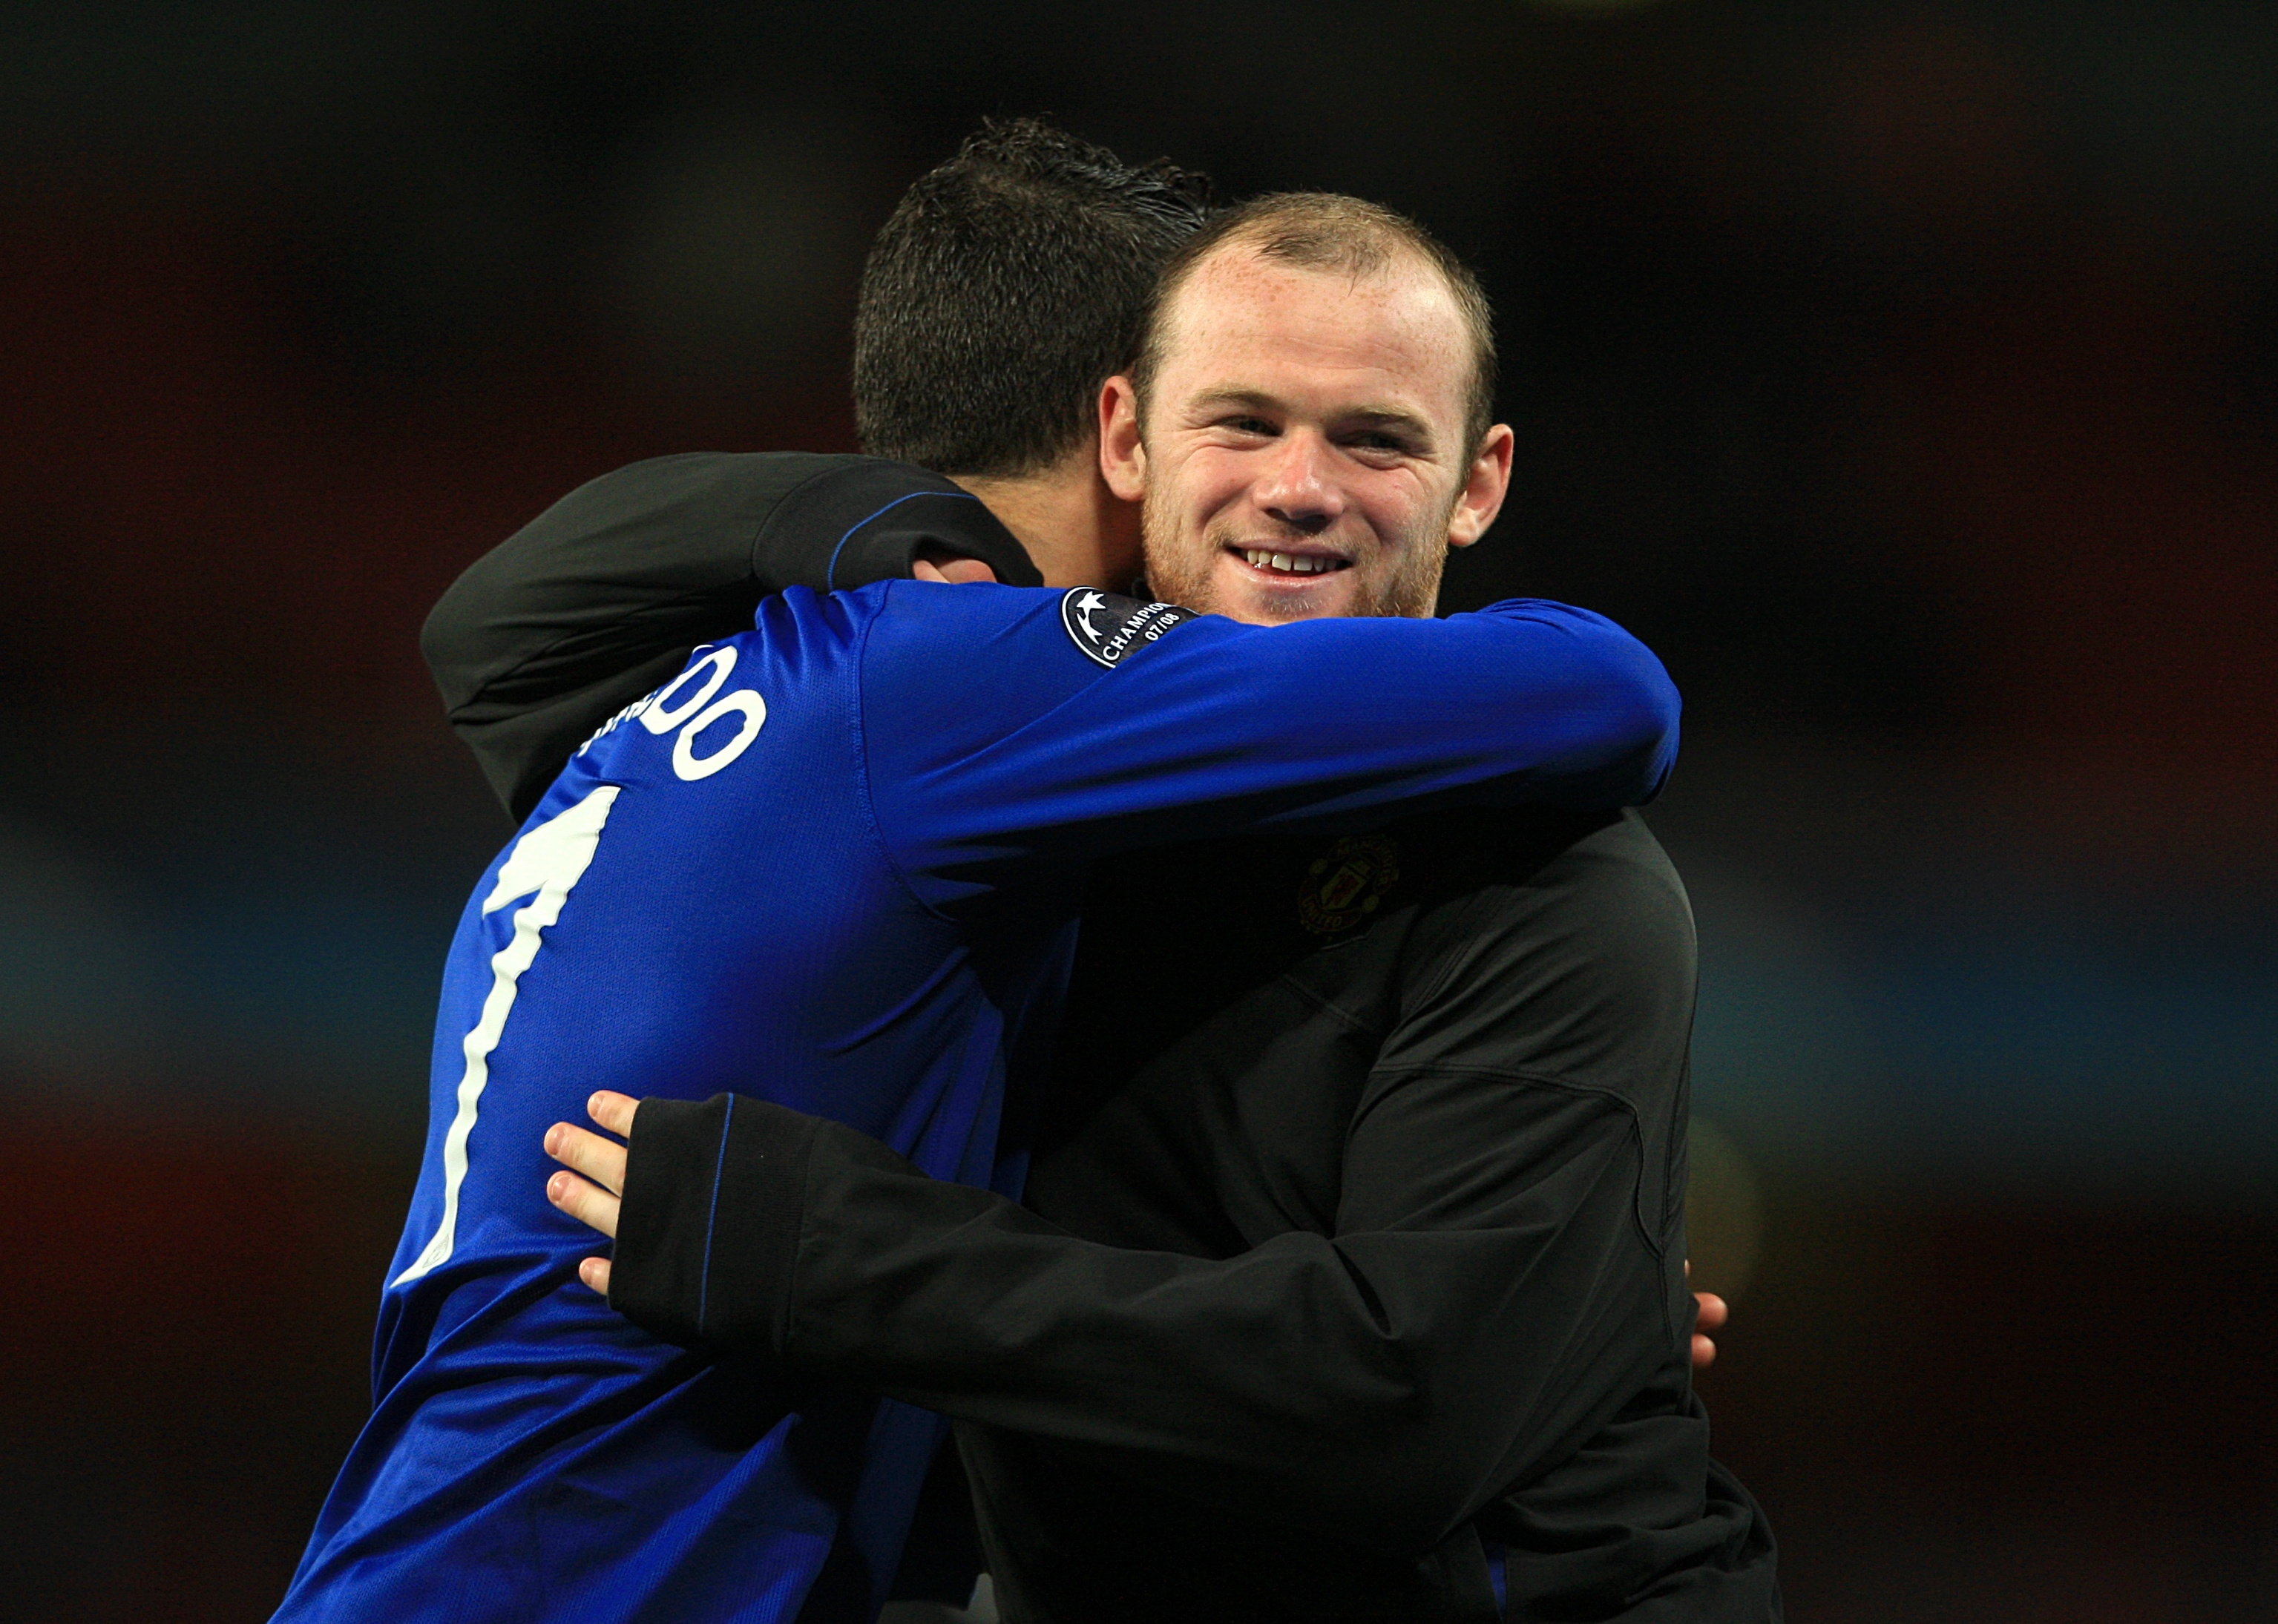 Ryan Giggs Backs Wayne Rooney's Return To England